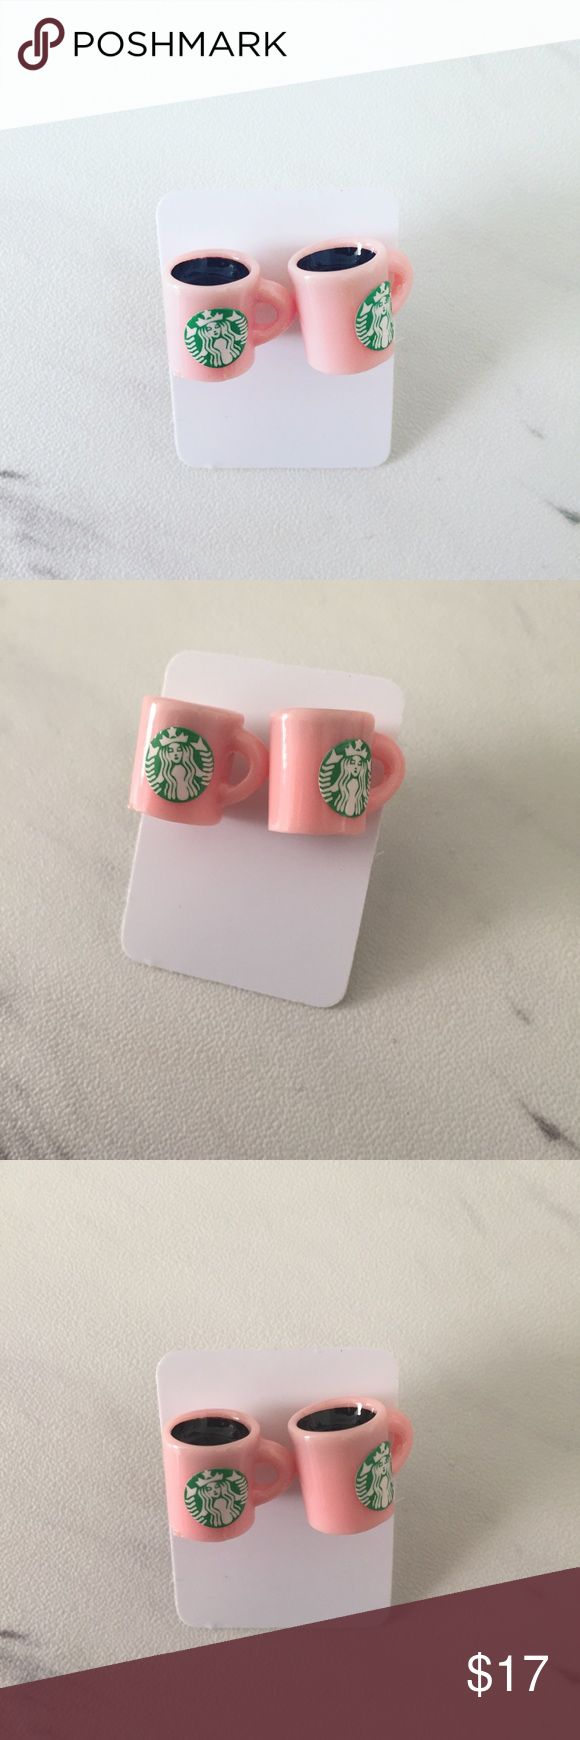 Starbucks Coffee Earrings Pink Starbucks Coffee earrings are perfect for yourself or the raspberry mocha addict in your life!   All Pineapple.PalmBeach jewelry and hair pins come packaged on crisp white packaging and tucked carefully into white chiffon pouches ready for you or a friend to enjoy!  Bundle discount available!  🍍Suggested User! 🍍5 Star Rated Seller! 🍍Same or next day shipper! 🐶Pet friendly 🚬Smoke-free 🚫No trades ❌No half price offers Pineapple.PalmBeach Jewelry Earrings